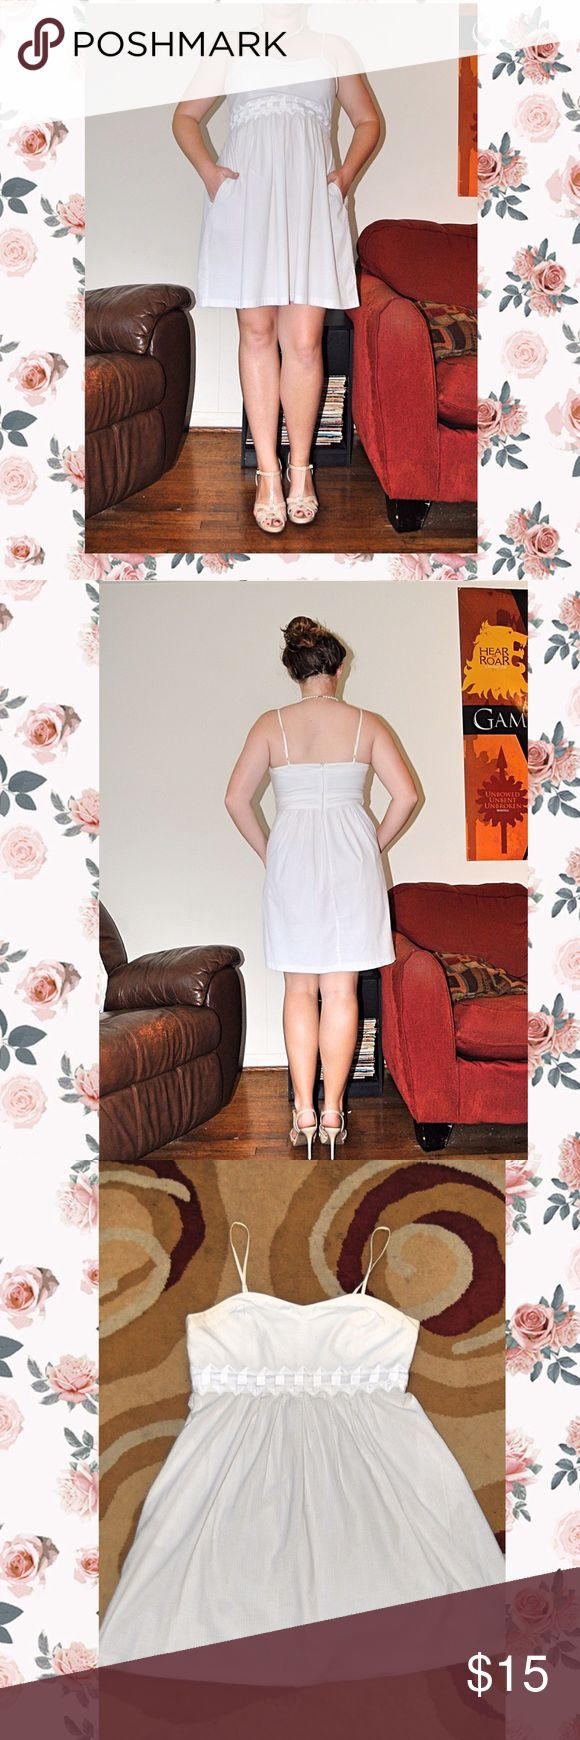 ⚪️ White summer dress with POCKETS⚪️ White summer dress. Has pockets on both sides. Spaghetti straps. Great white dress for graduation or party! Dresses